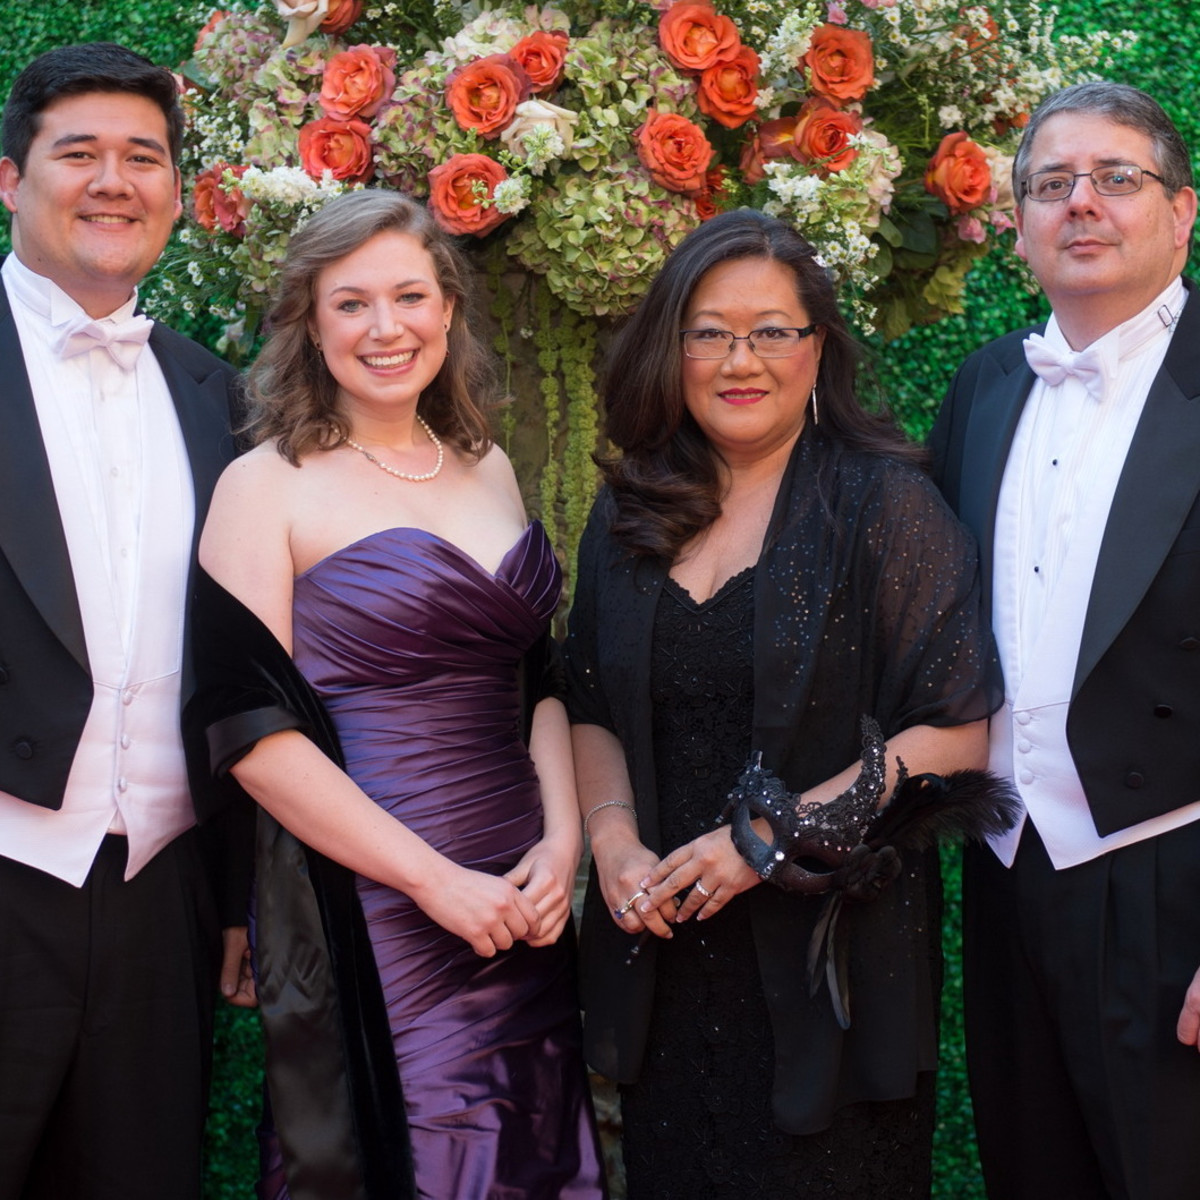 Houston, Houston grand opera ball, April 2017, David Catalano, Eleanora Benedict, Anna Catalano, Joel Catalano